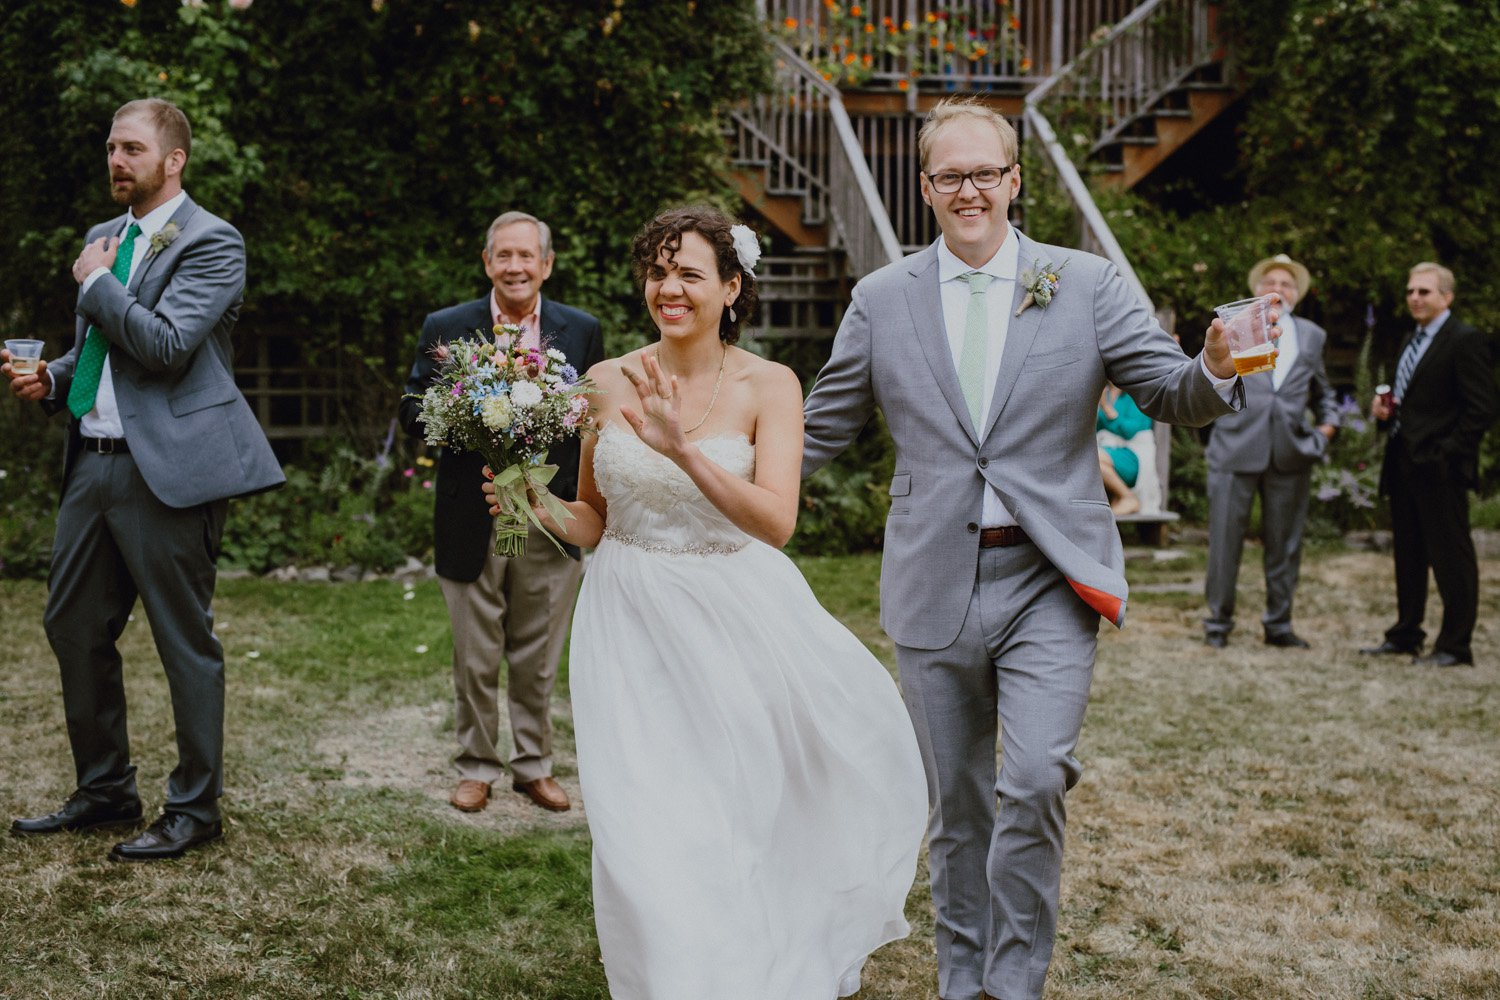 The bride and groom being welcomed into the reception captured by Catalina Jean Photography